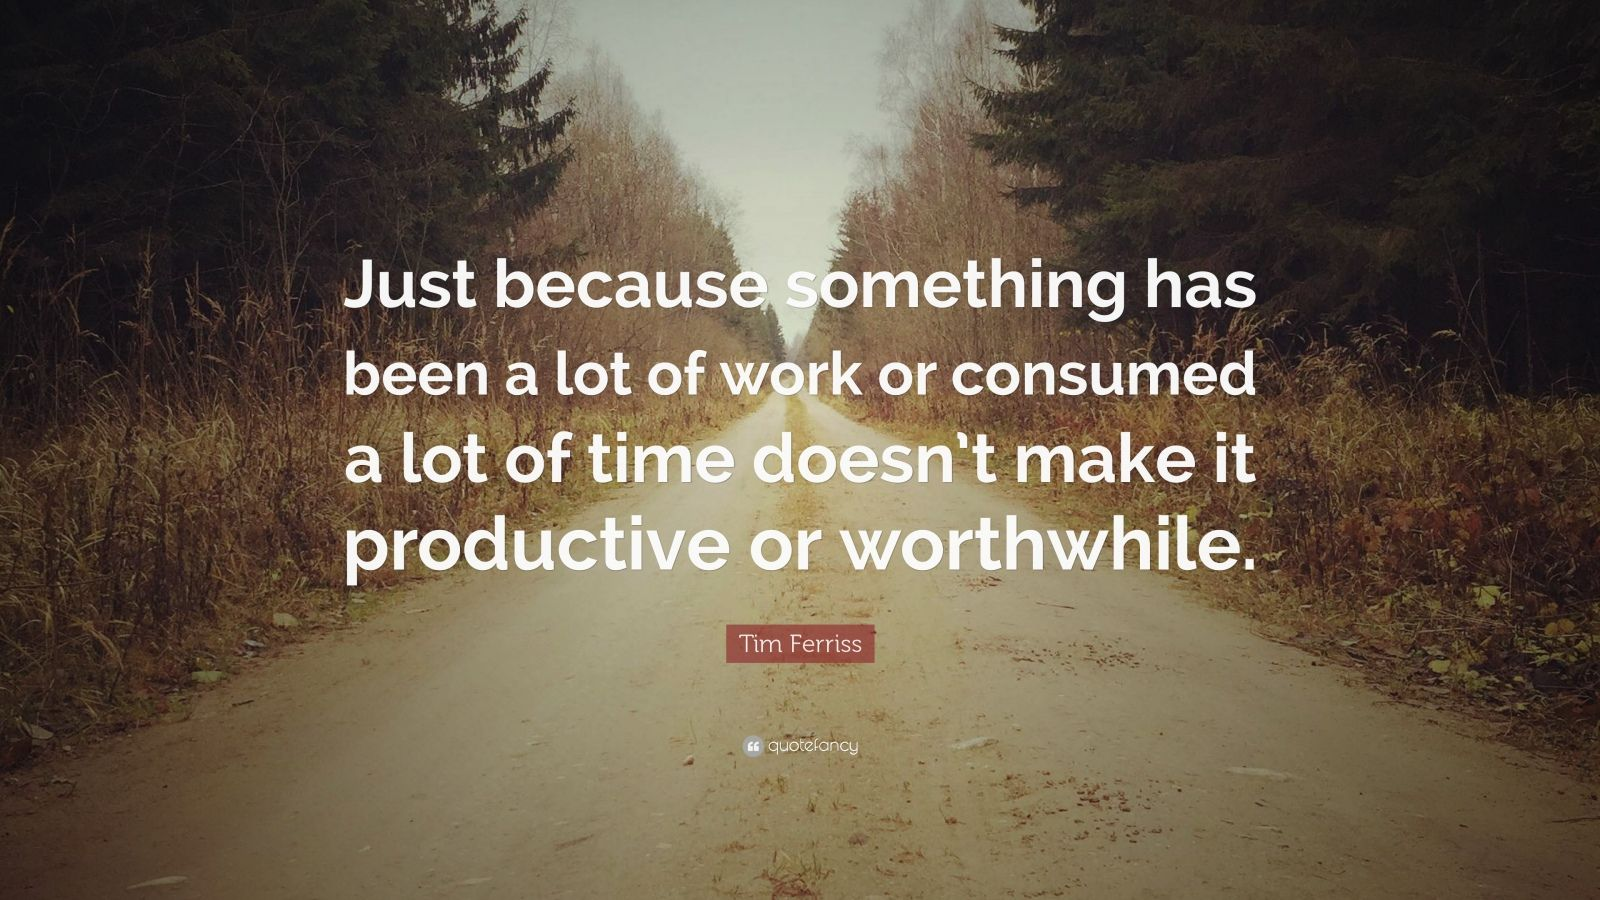 """Tim Ferriss Quote: """"Just because something has been a lot of work or consumed a lot of time doesn't make it productive or worthwhile."""""""